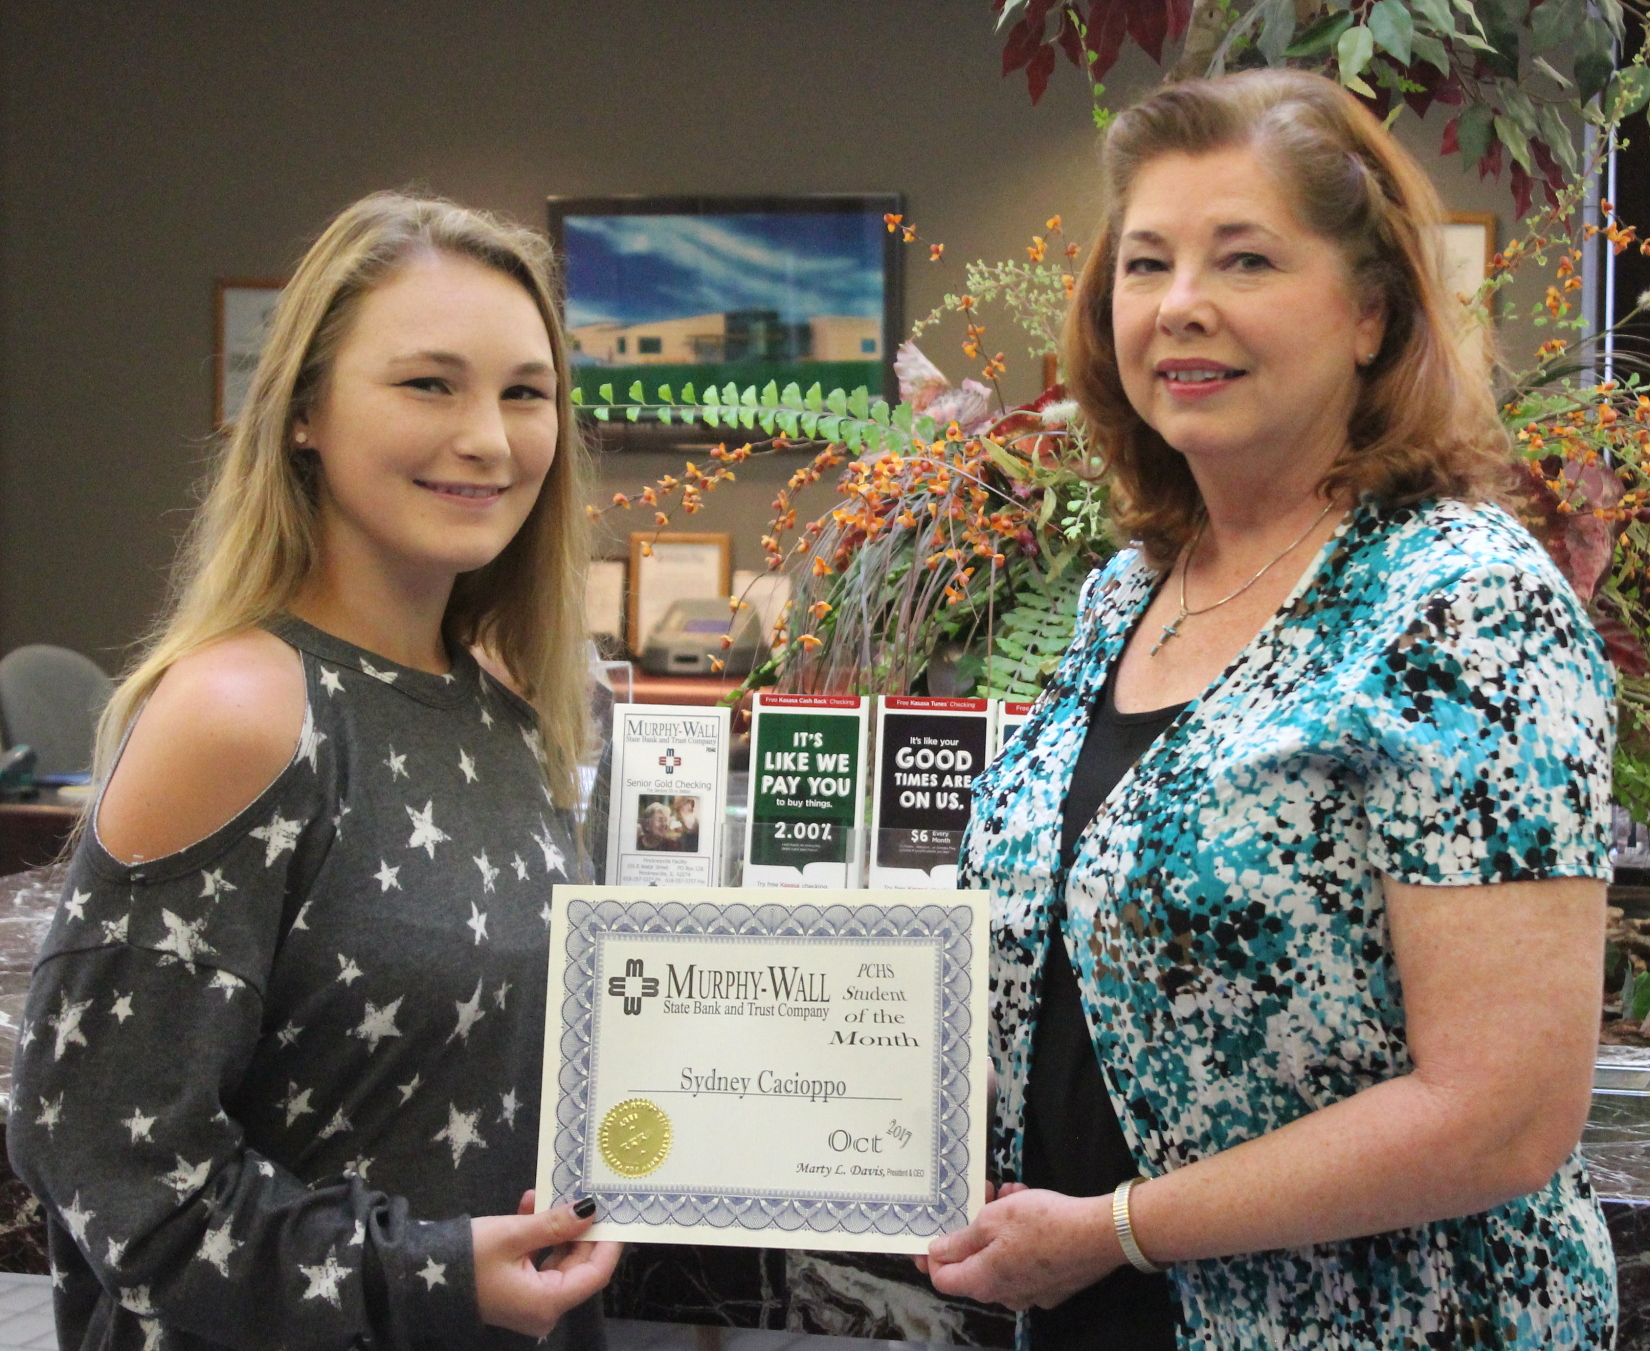 Murphy-Wall employee Kathy Marlow handing the Student of the Month Award to PCHS student Sydney Cacioppo